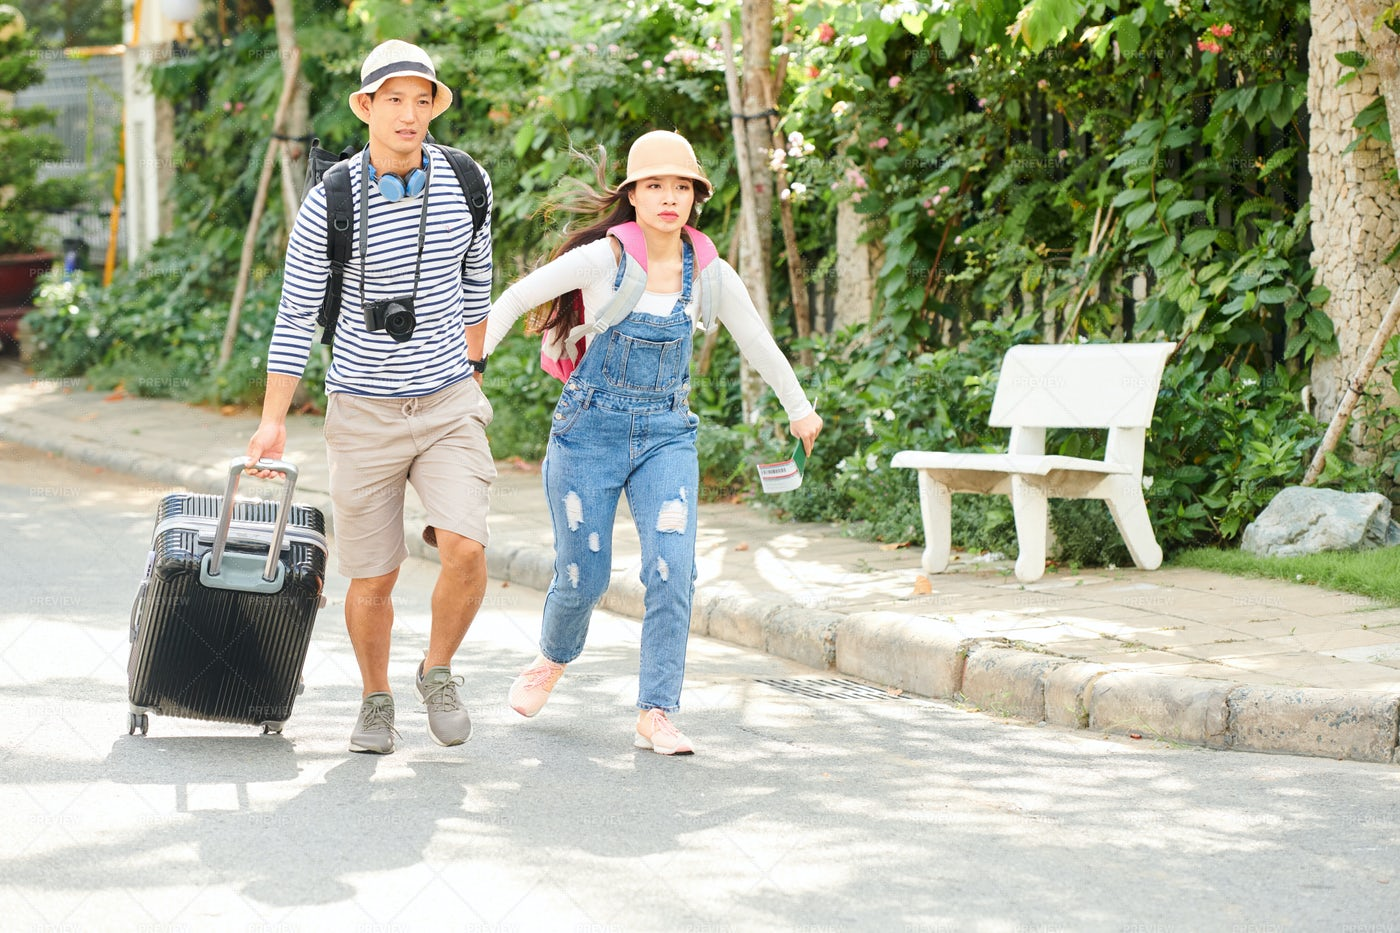 Couple With Suitcase Hurrying To Bus: Stock Photos